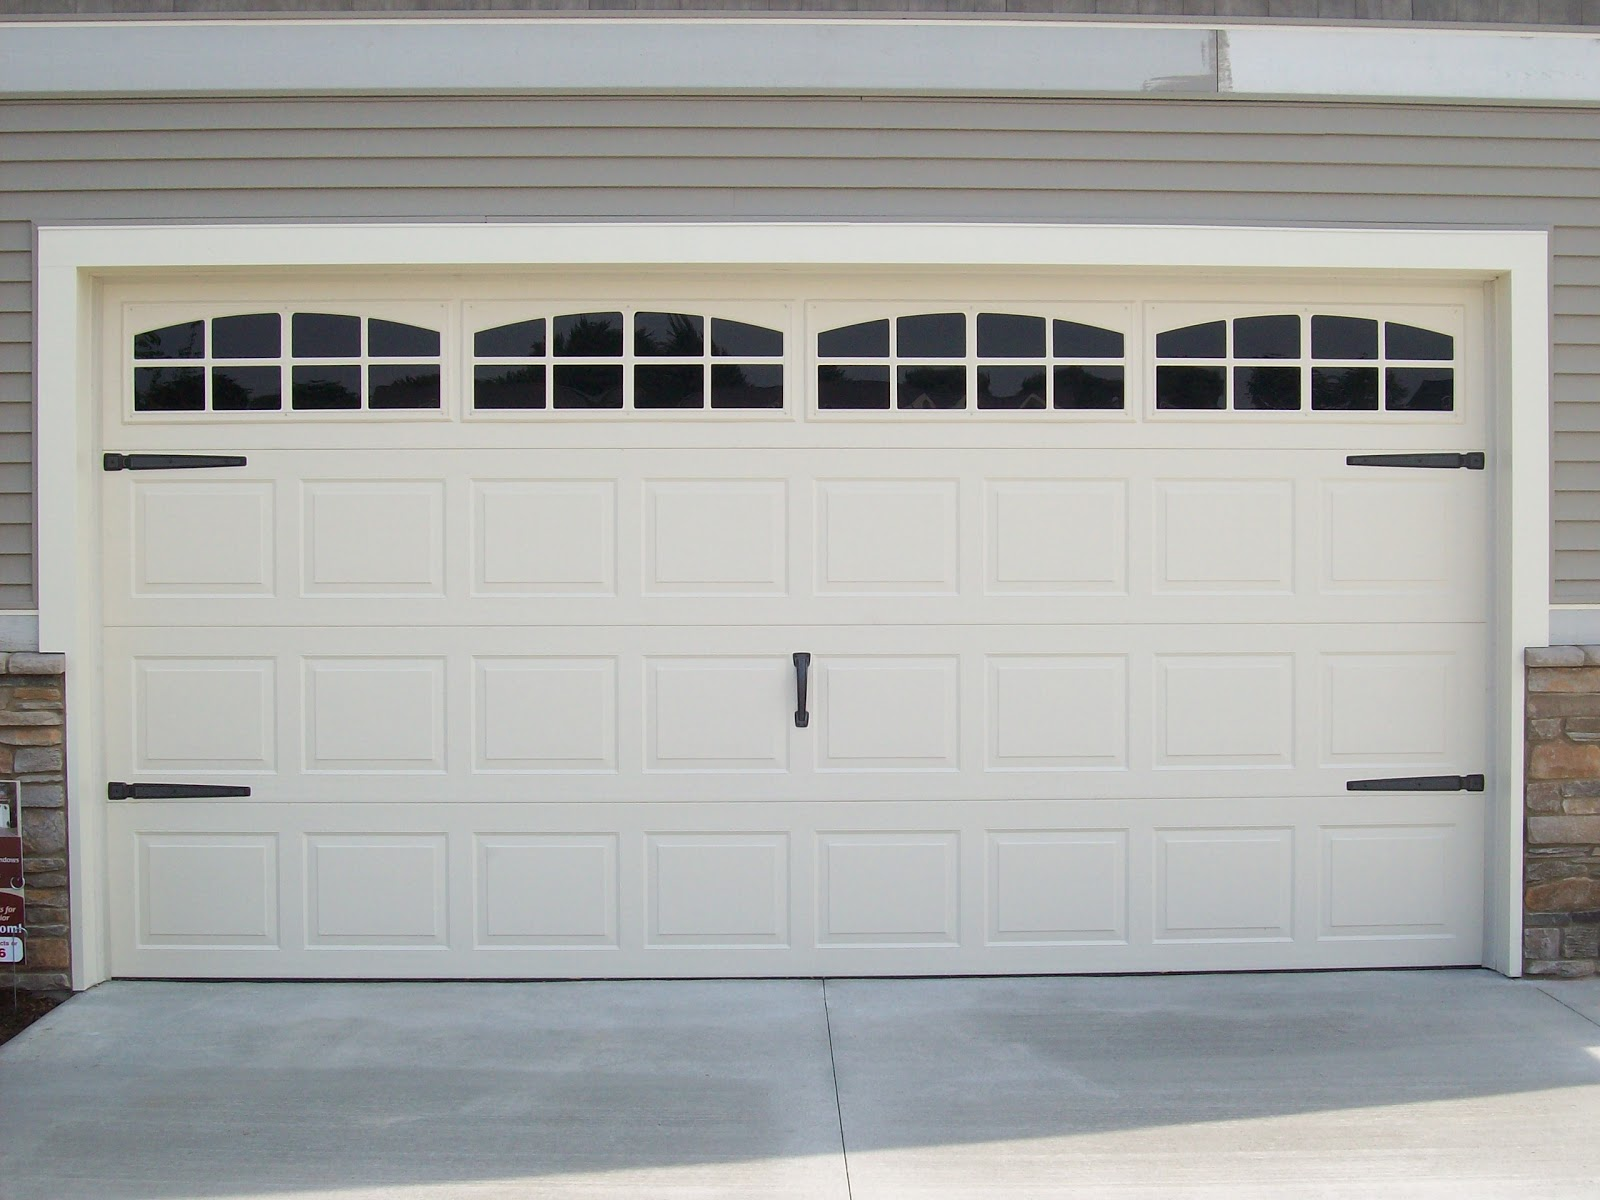 1200 #776D54  House Accents: Makeover Your Garage Door With Coach House Accents wallpaper Grarage Doors 38151600